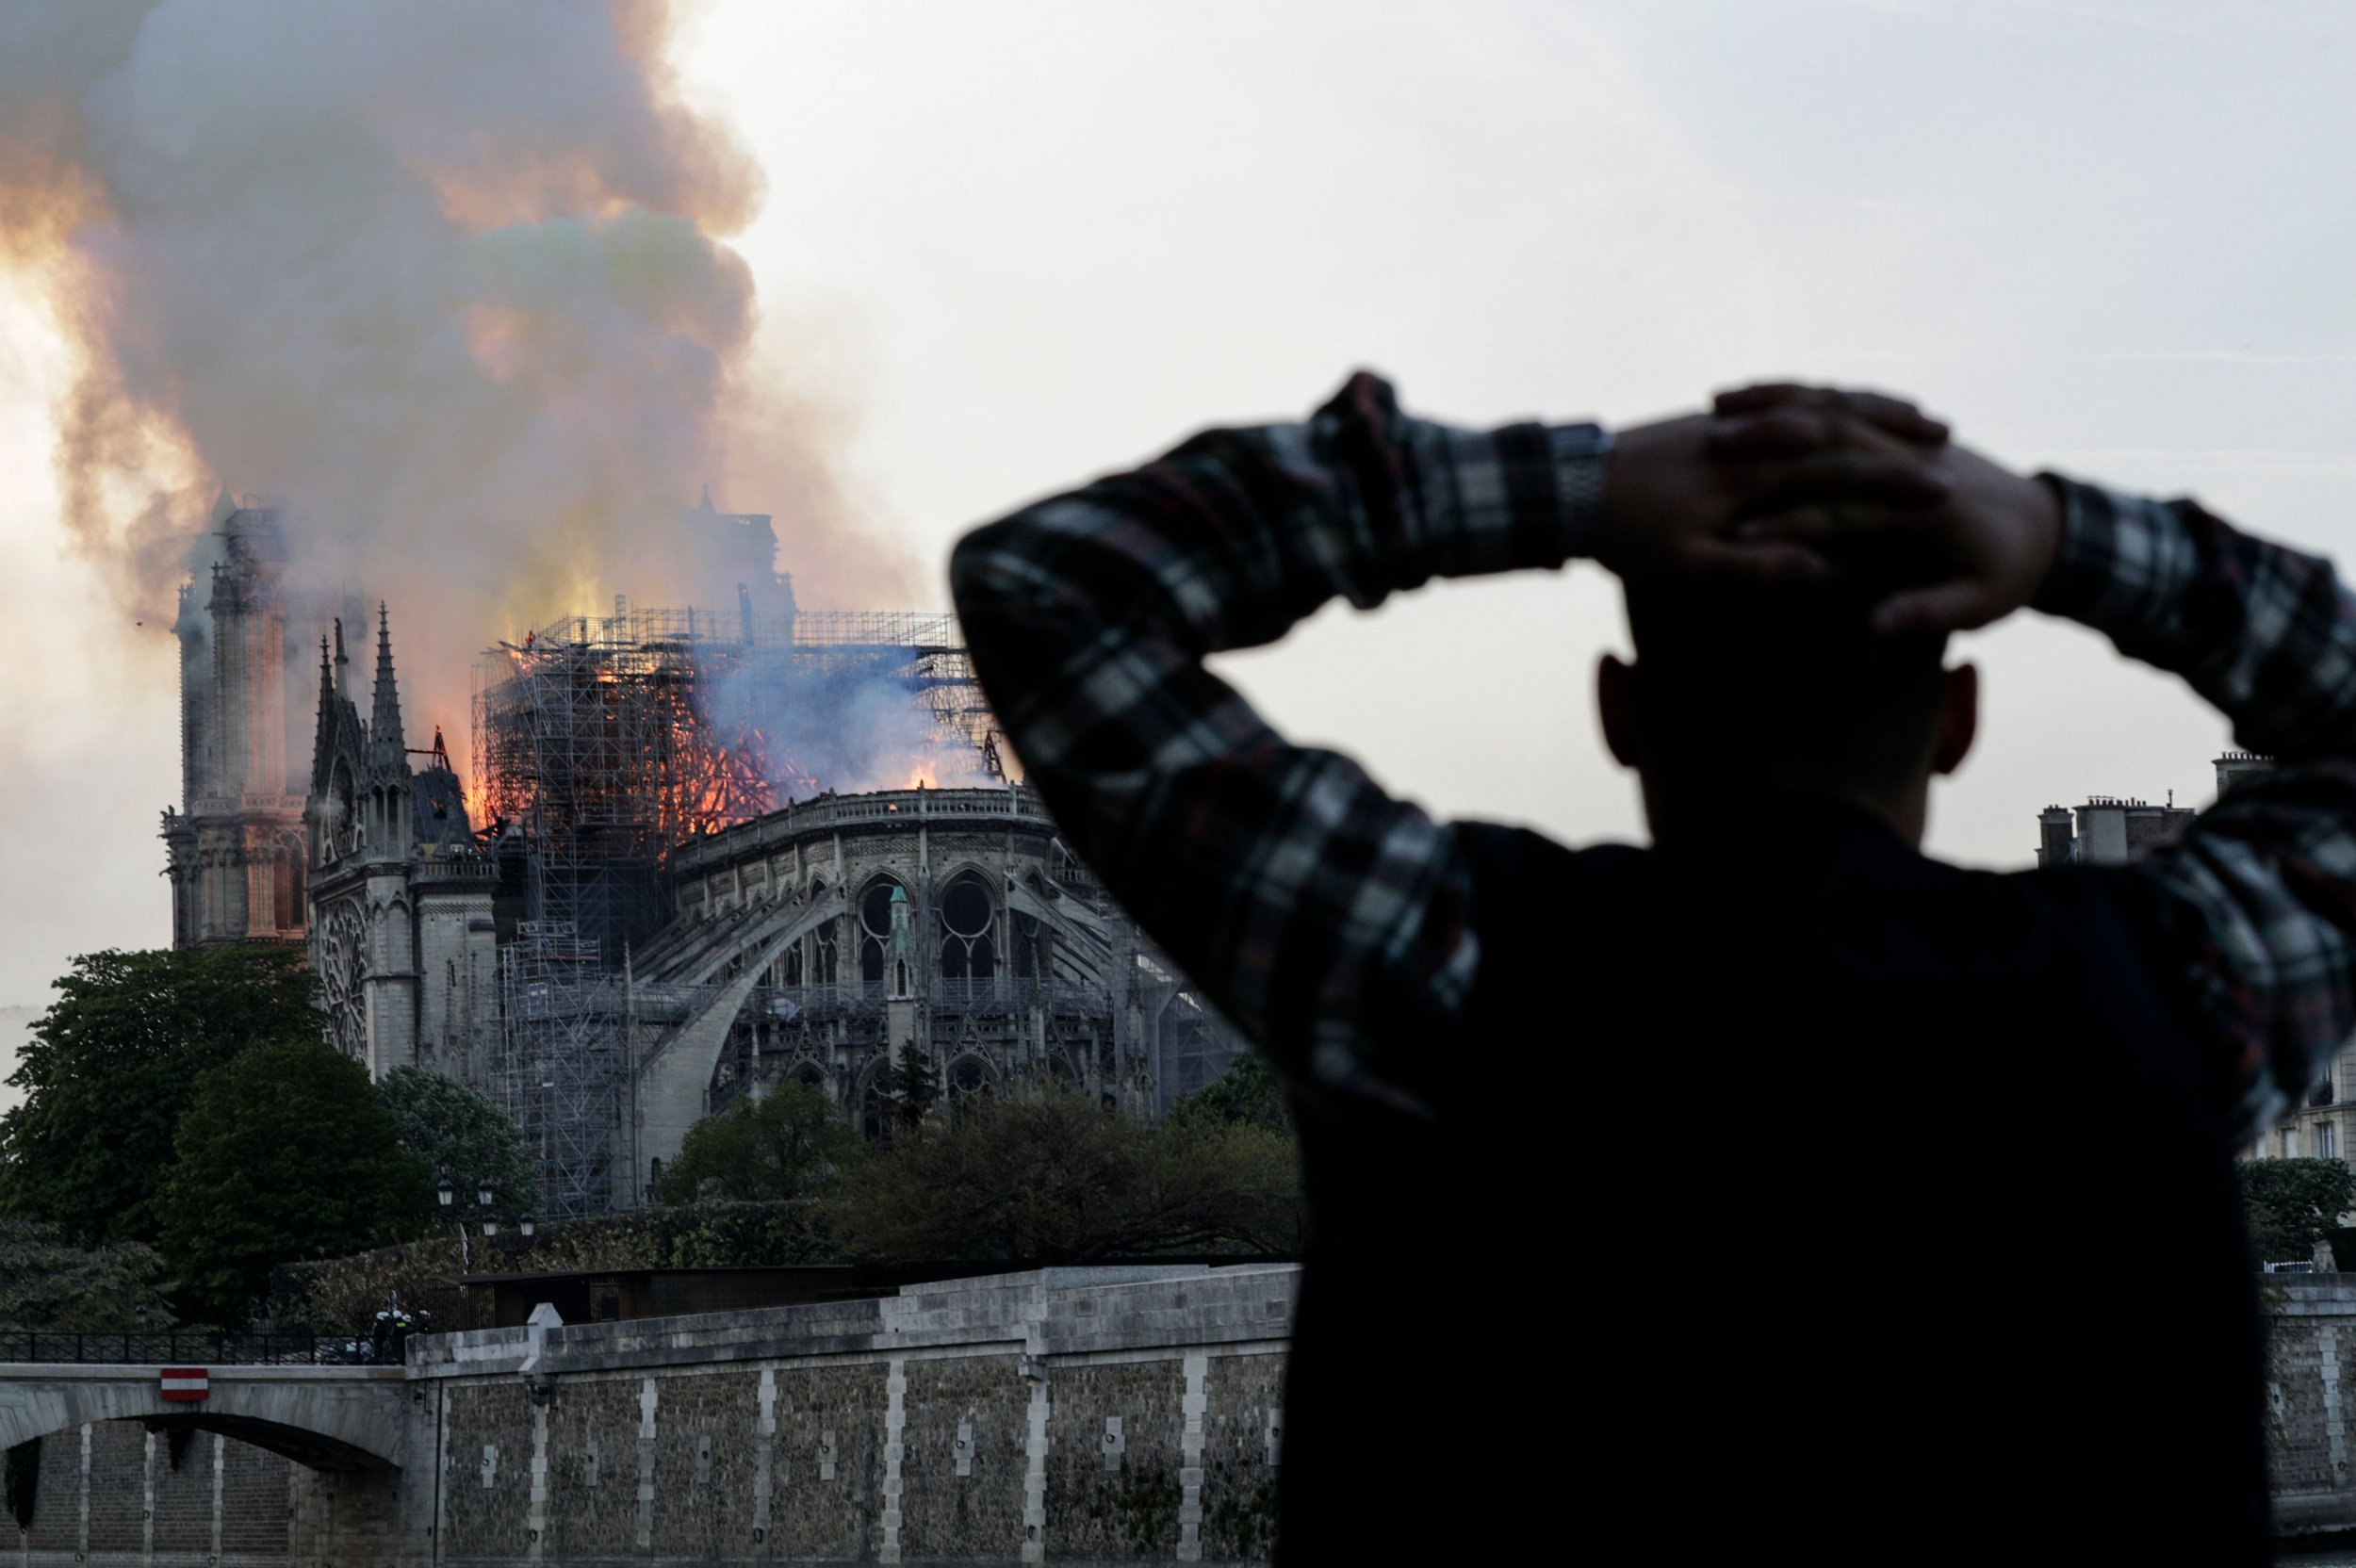 notre dame fire man hand on head